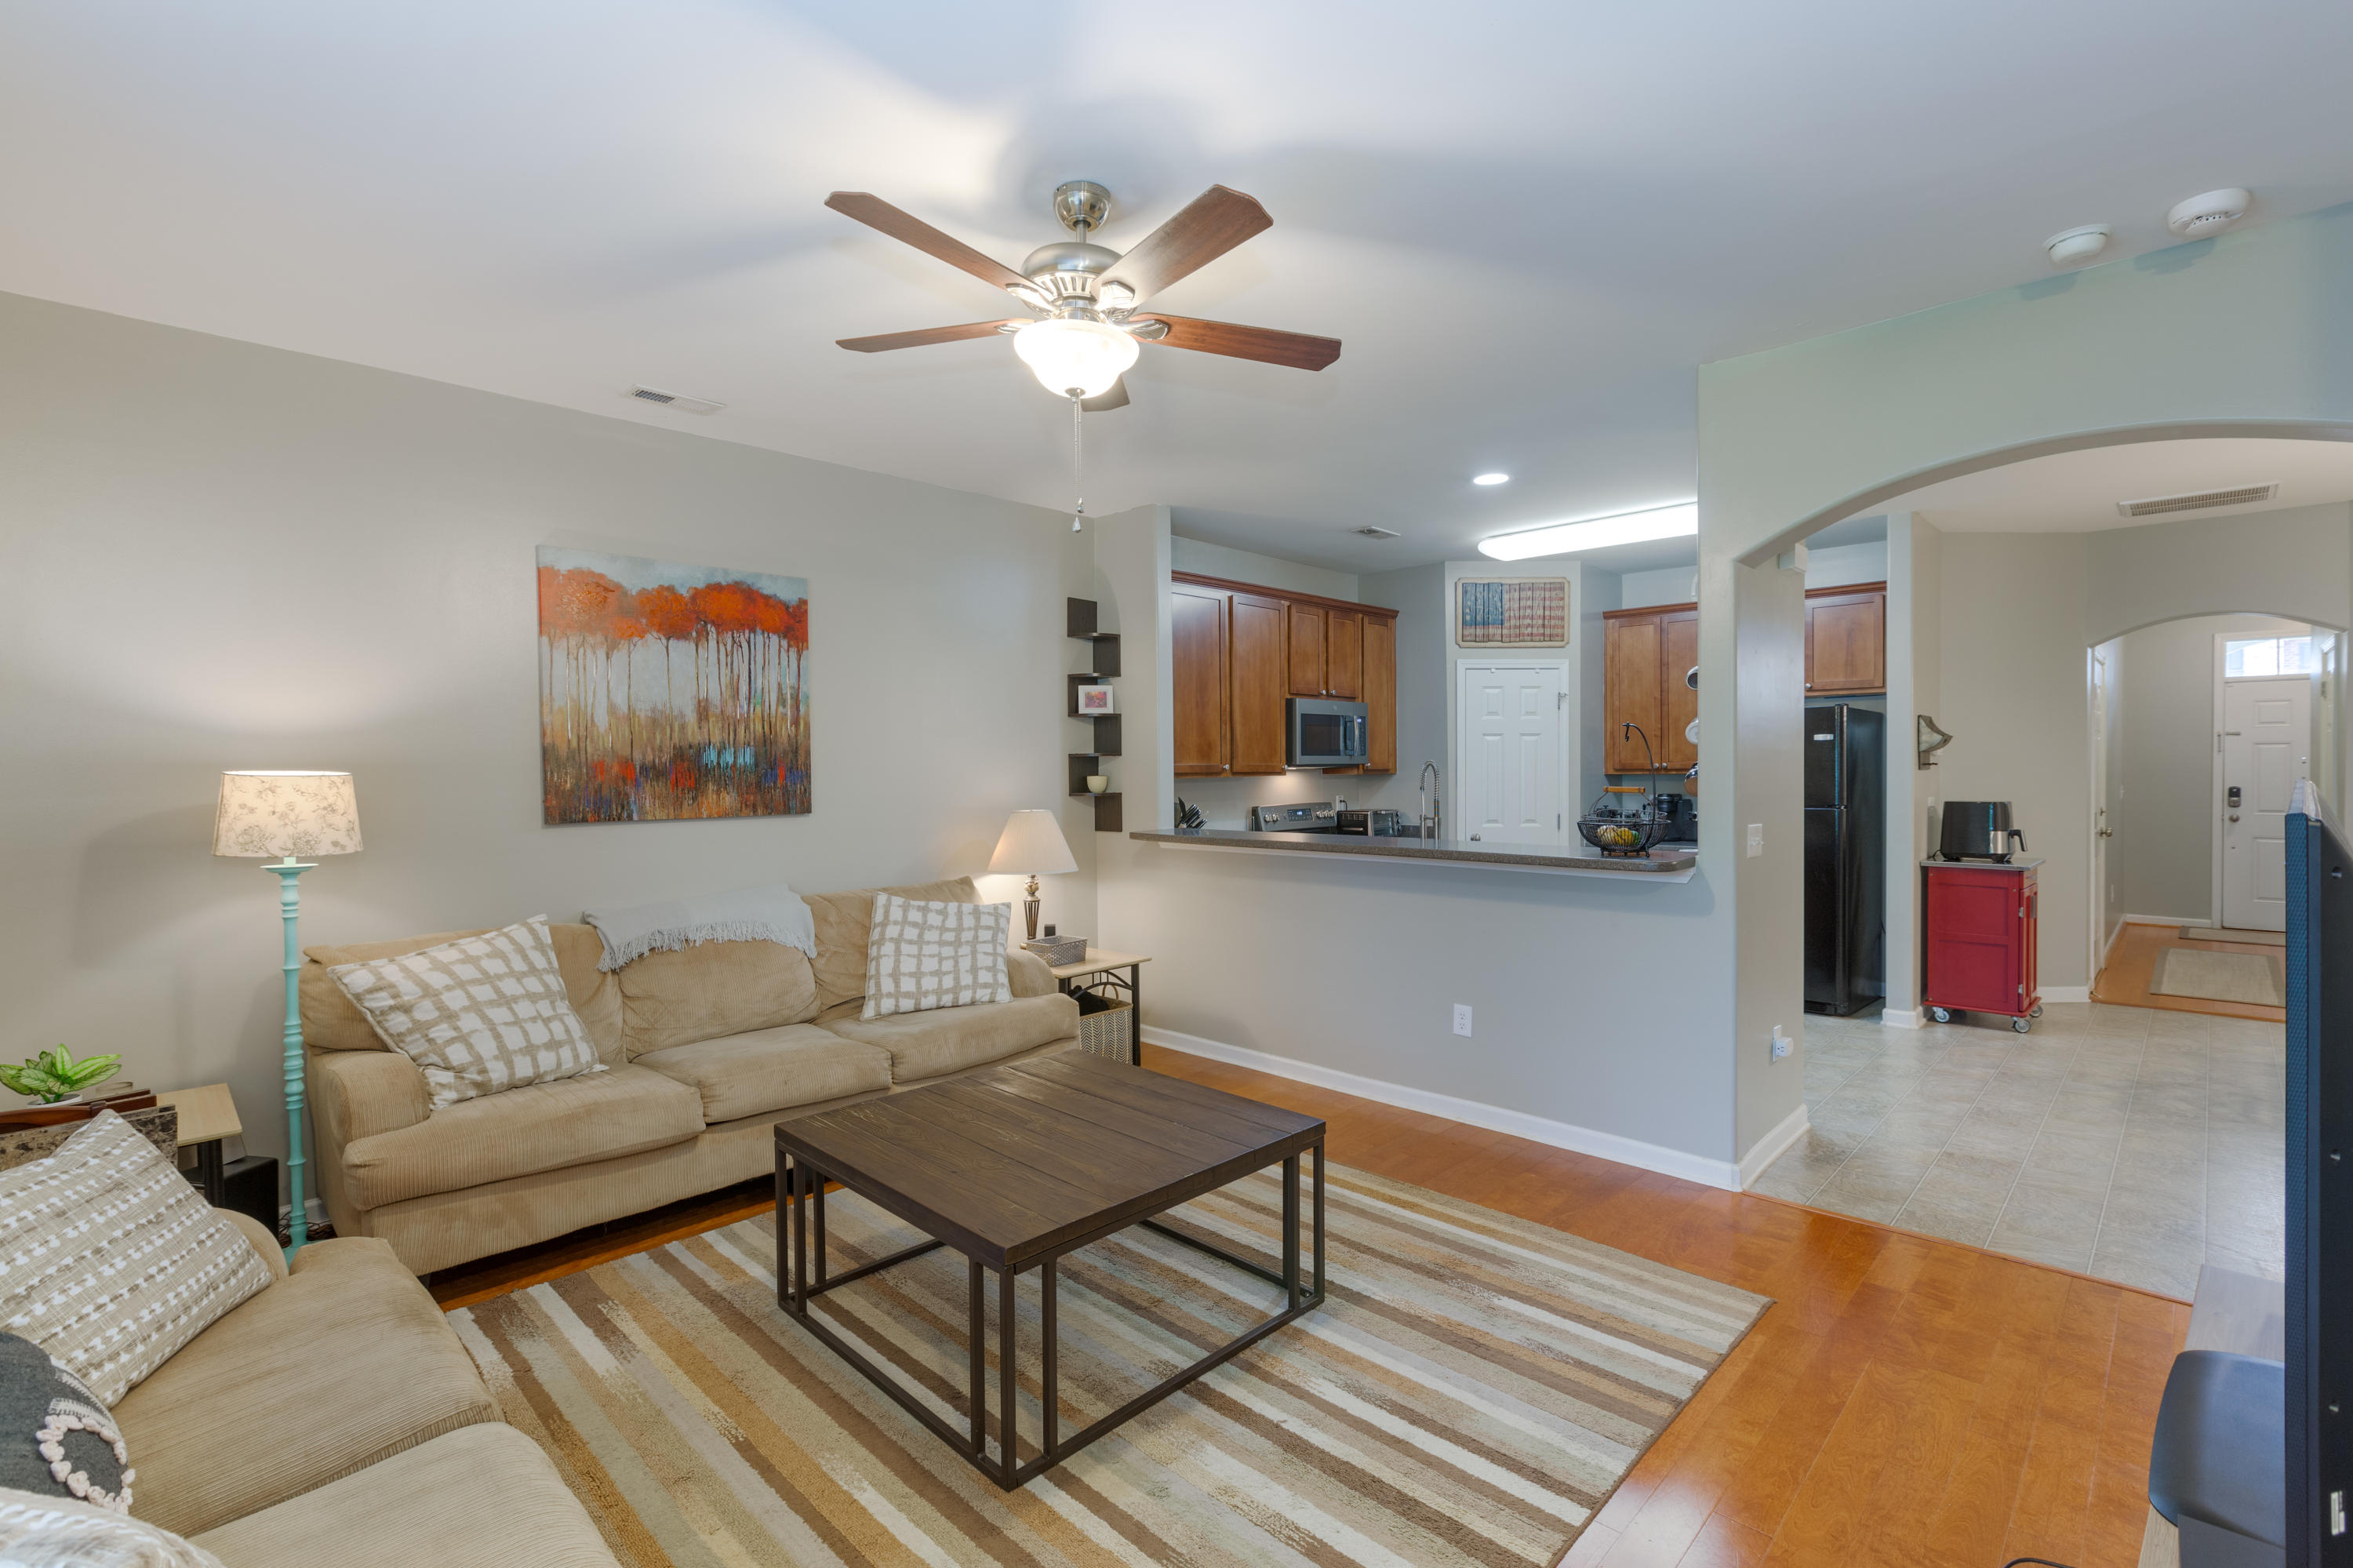 Berkeley Commons Townhomes Homes For Sale - 113 Lamplighter, Summerville, SC - 19